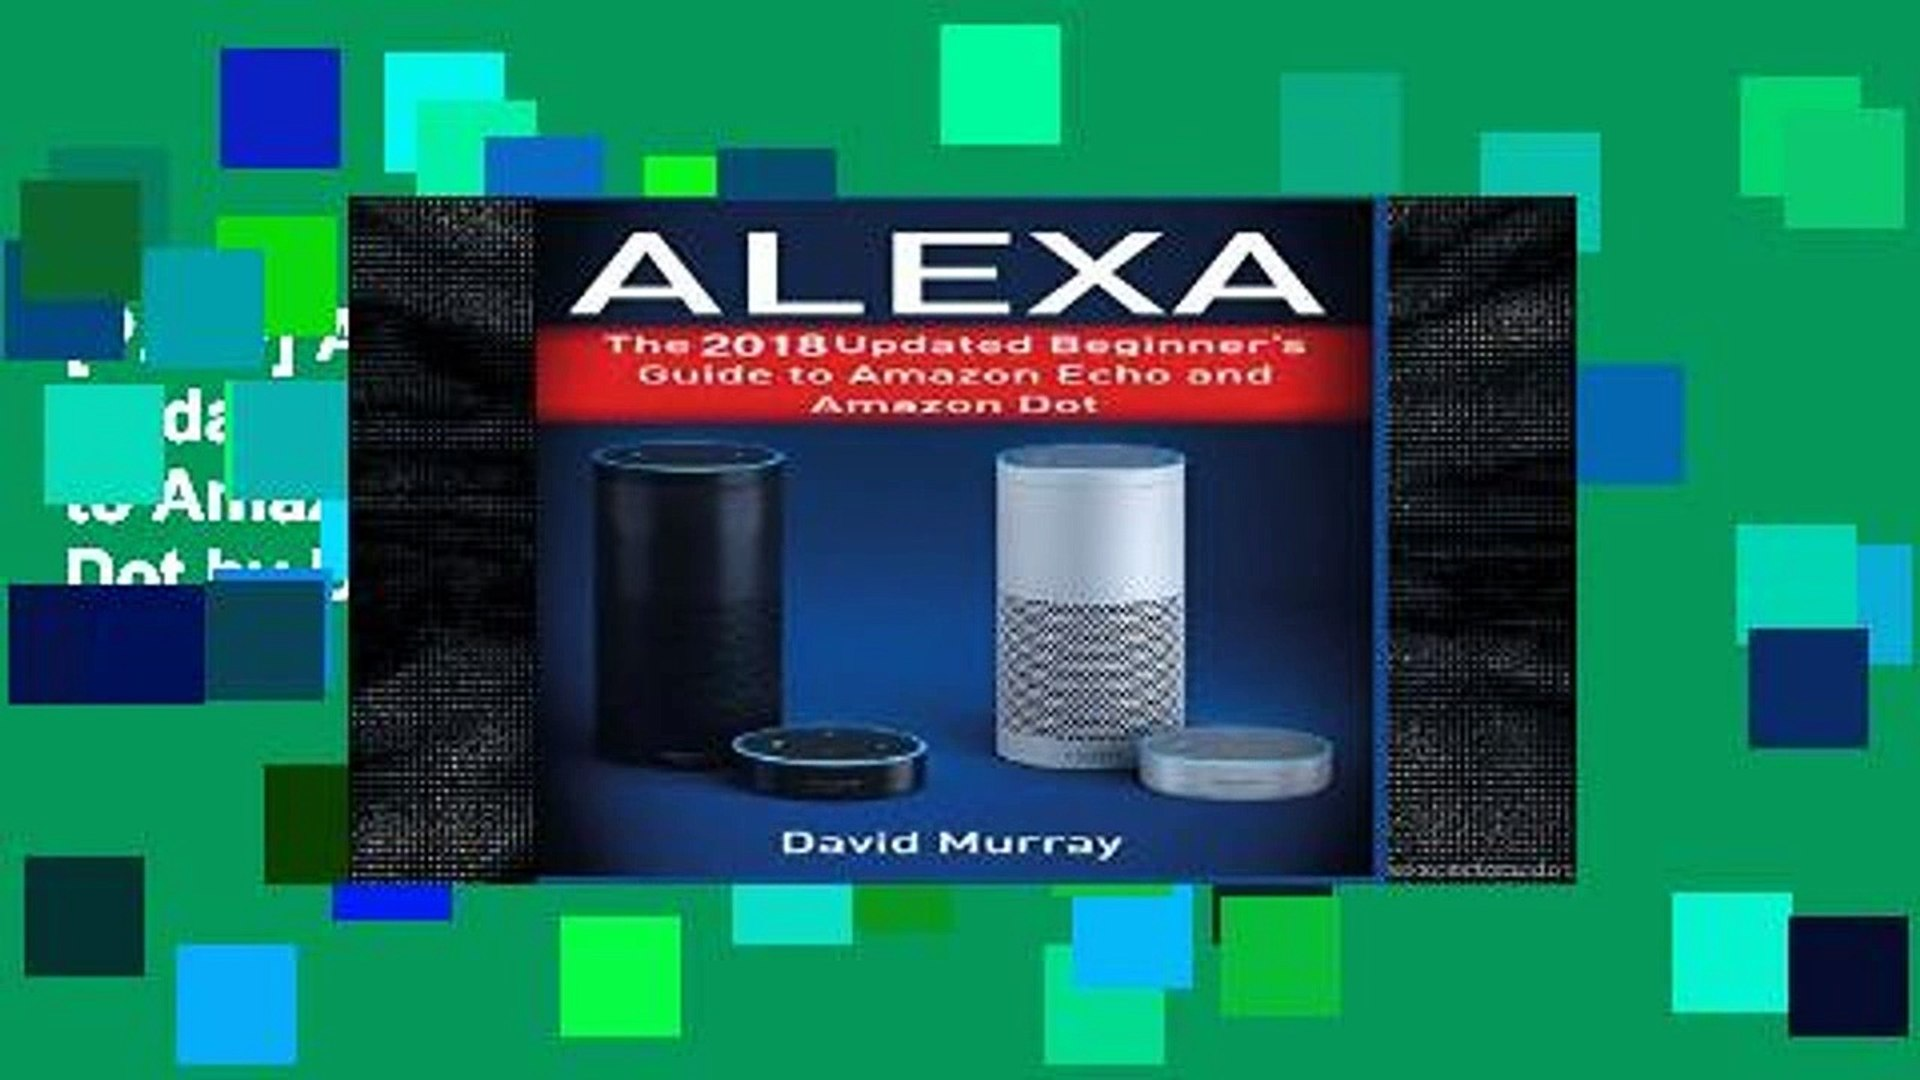 [P.D.F] Alexa: The 2018 Updated Begginer s Guide to Amazon Echo and Amazon Dot by David Murray